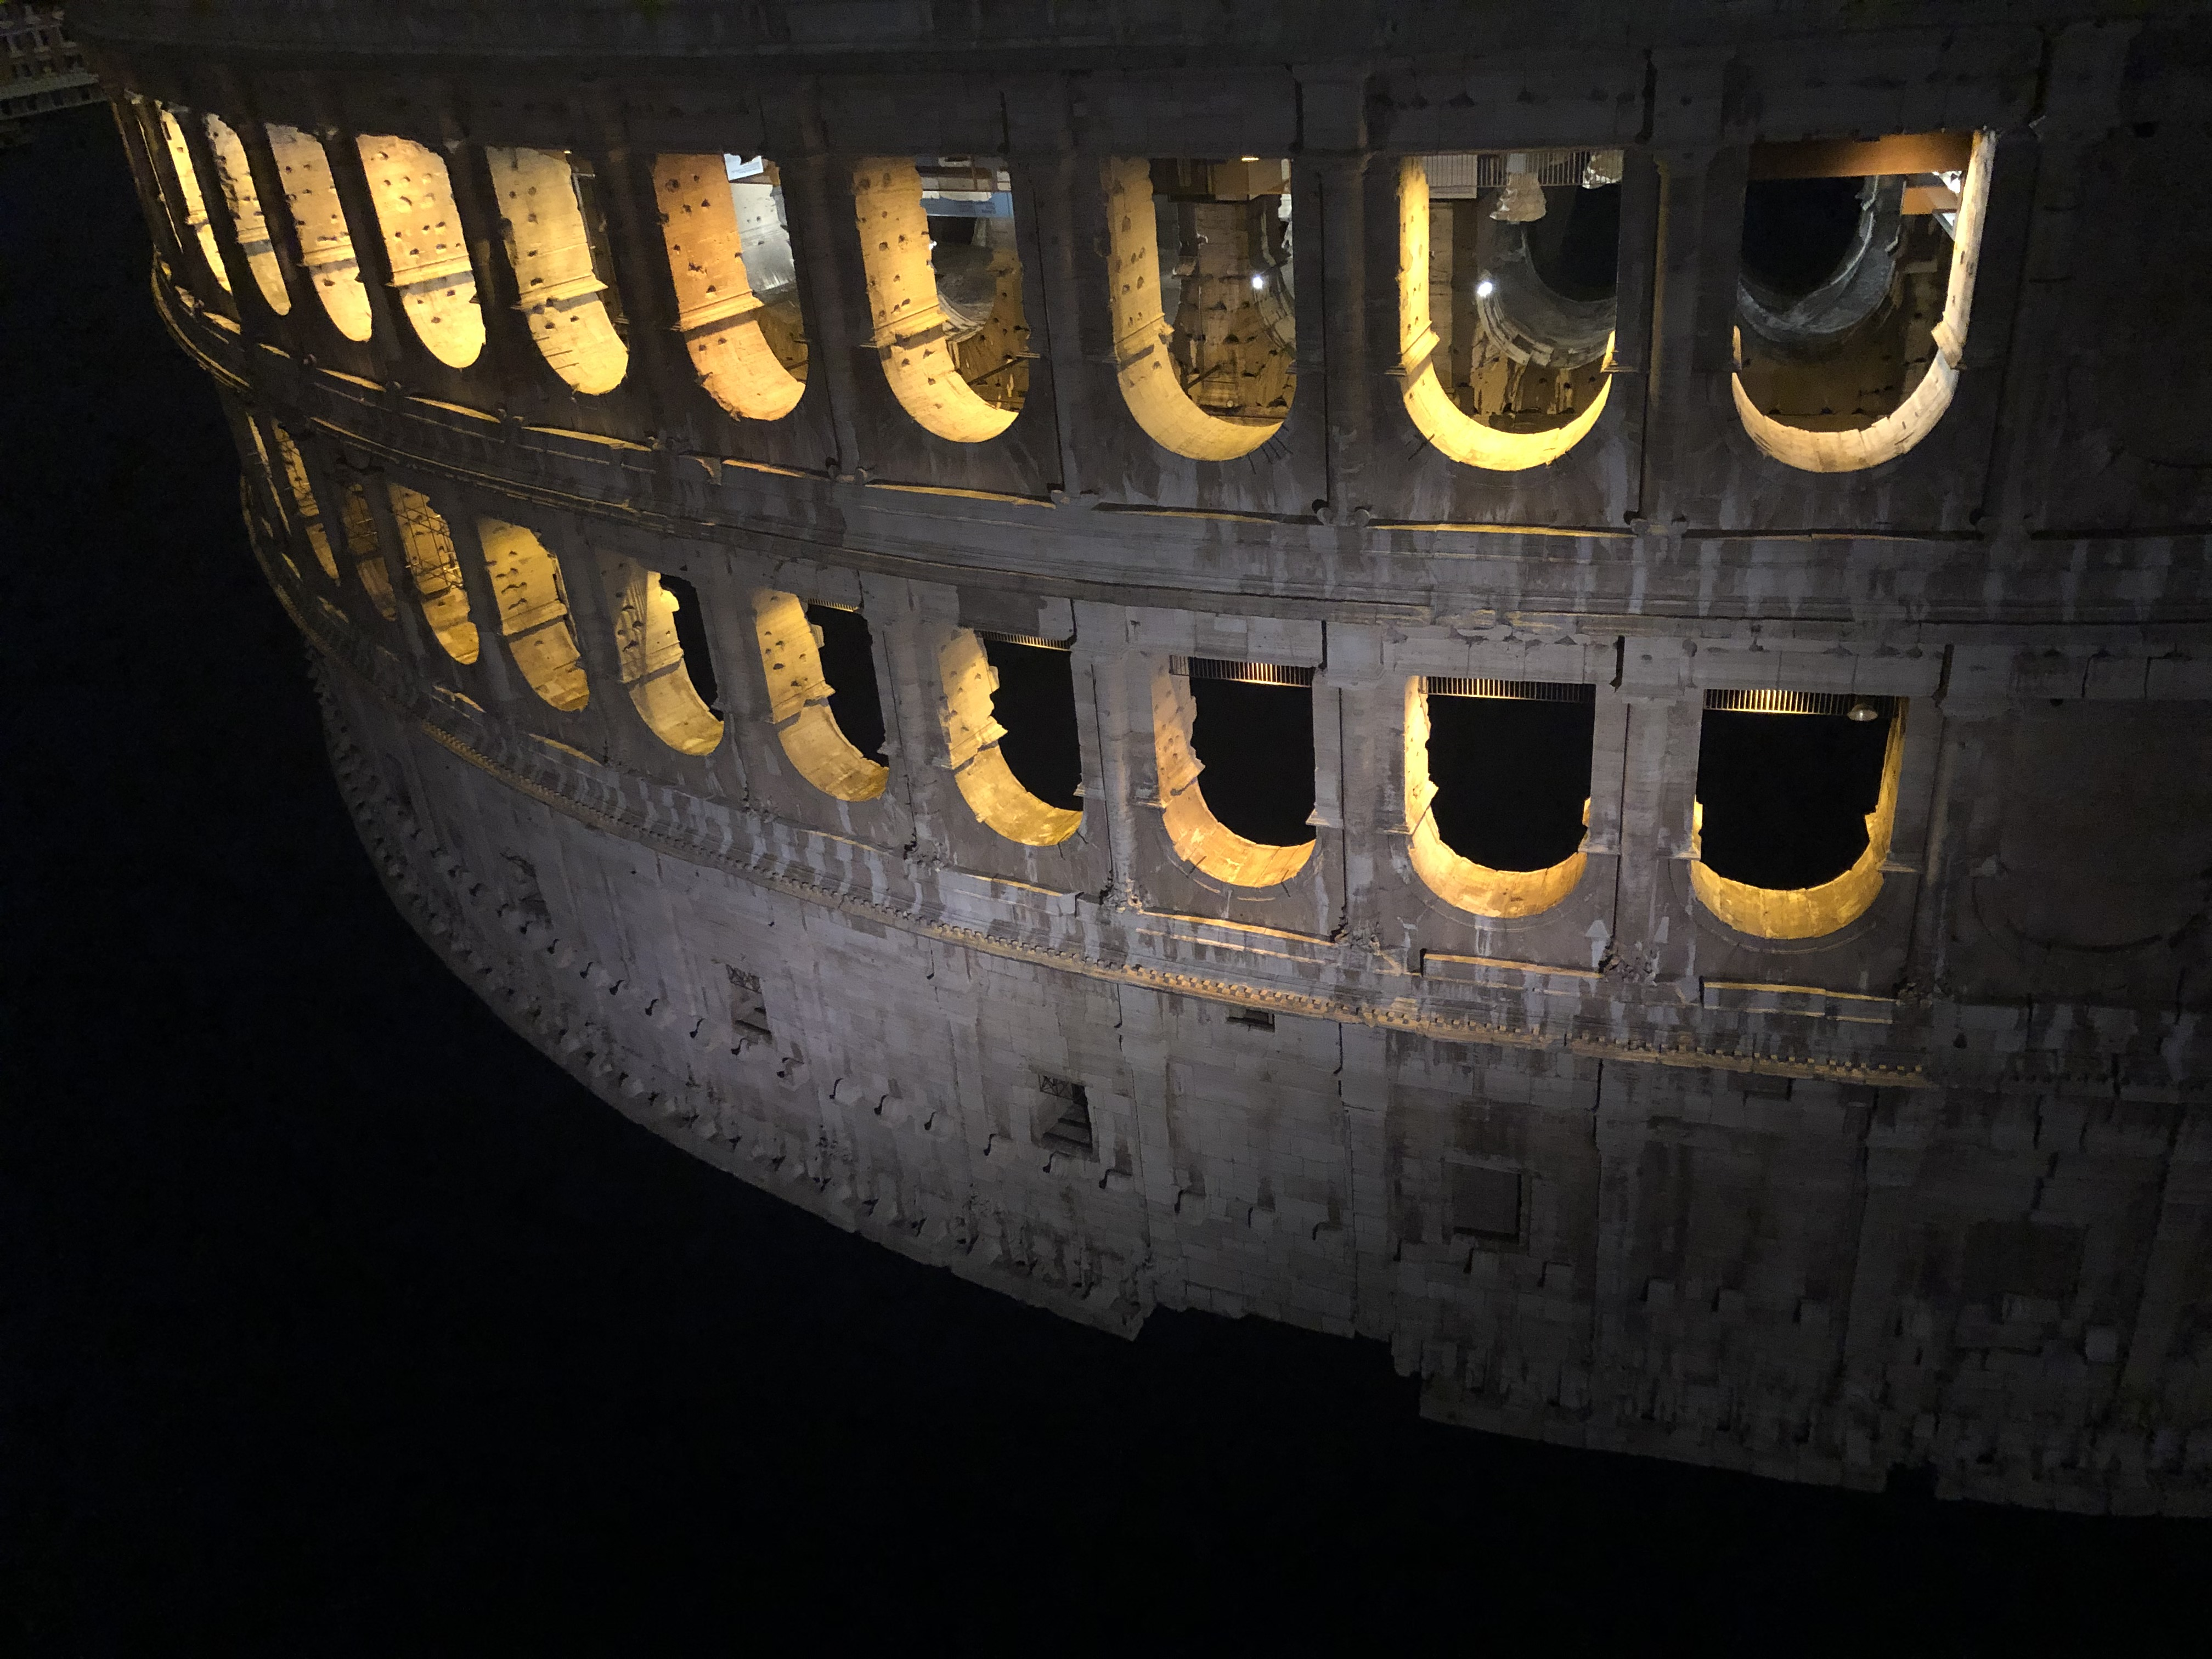 Nights in Rome